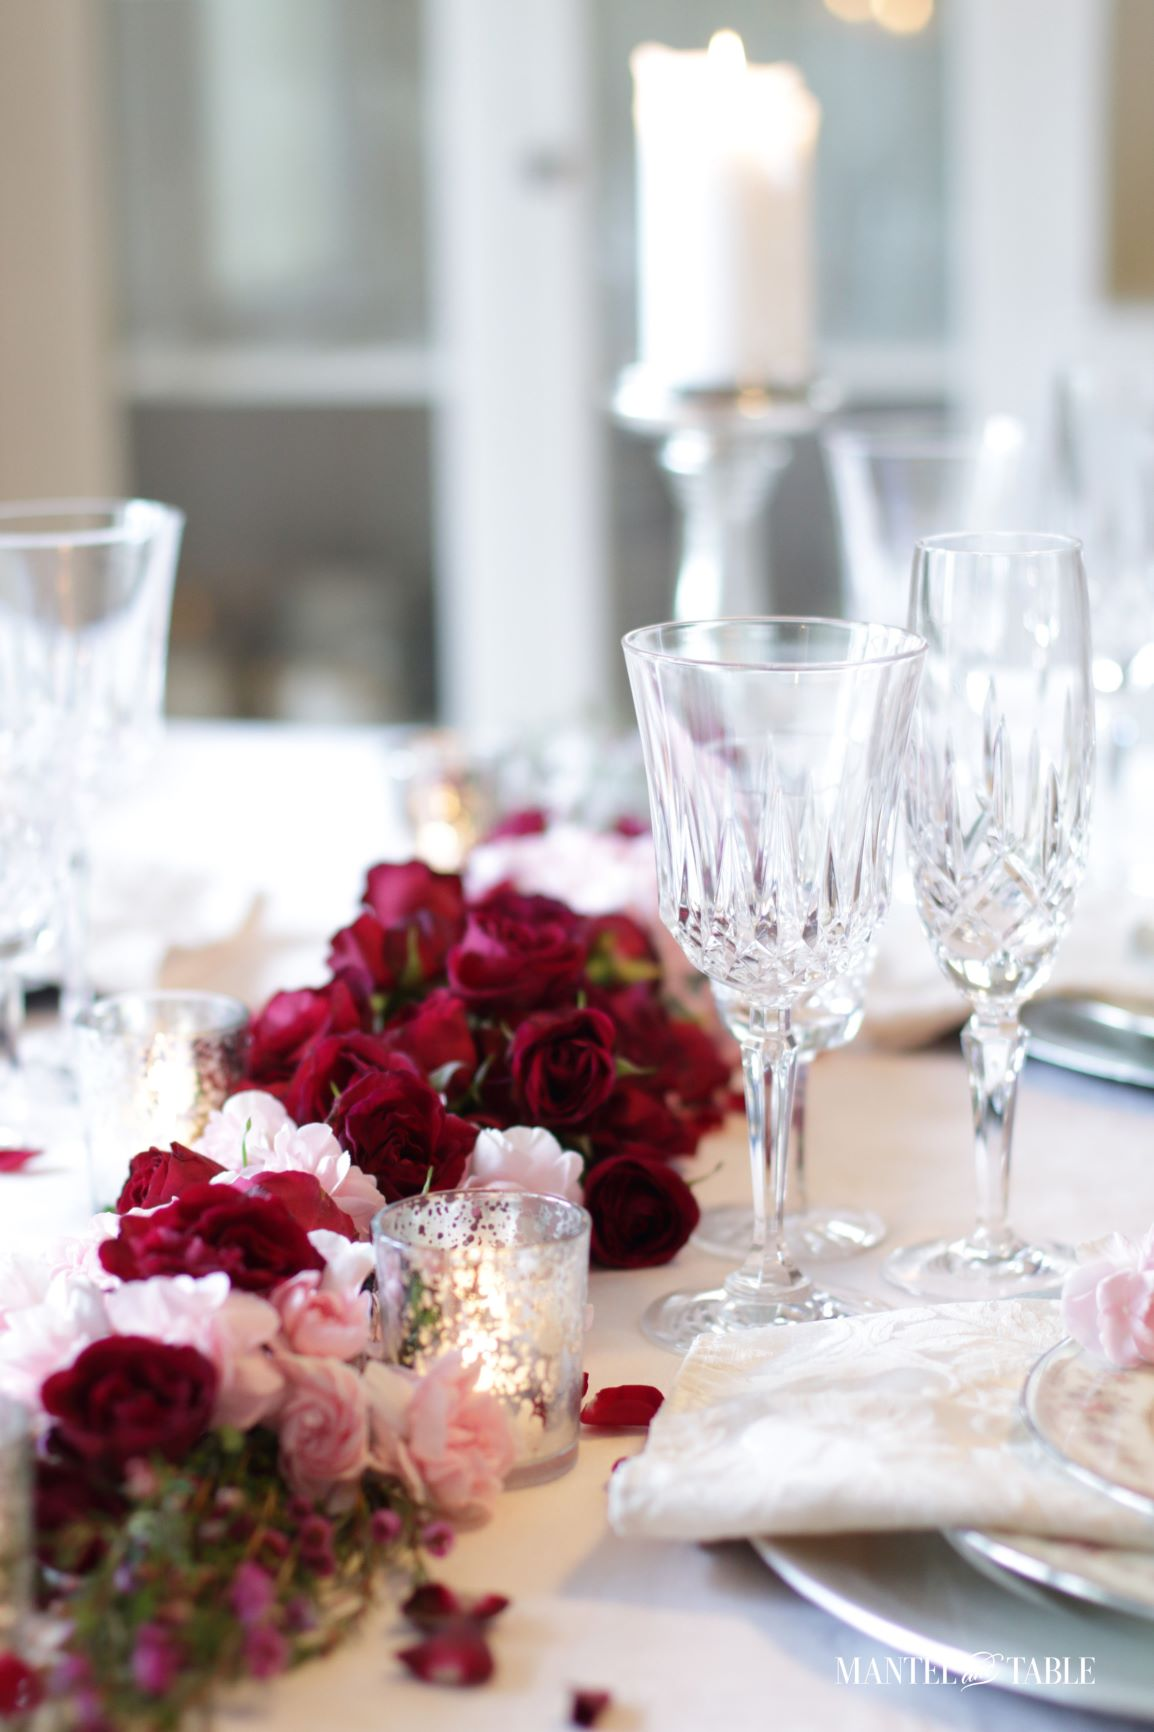 Valentines Tablescape Double Date ~ Four place settings on a table with floral centerpiece.